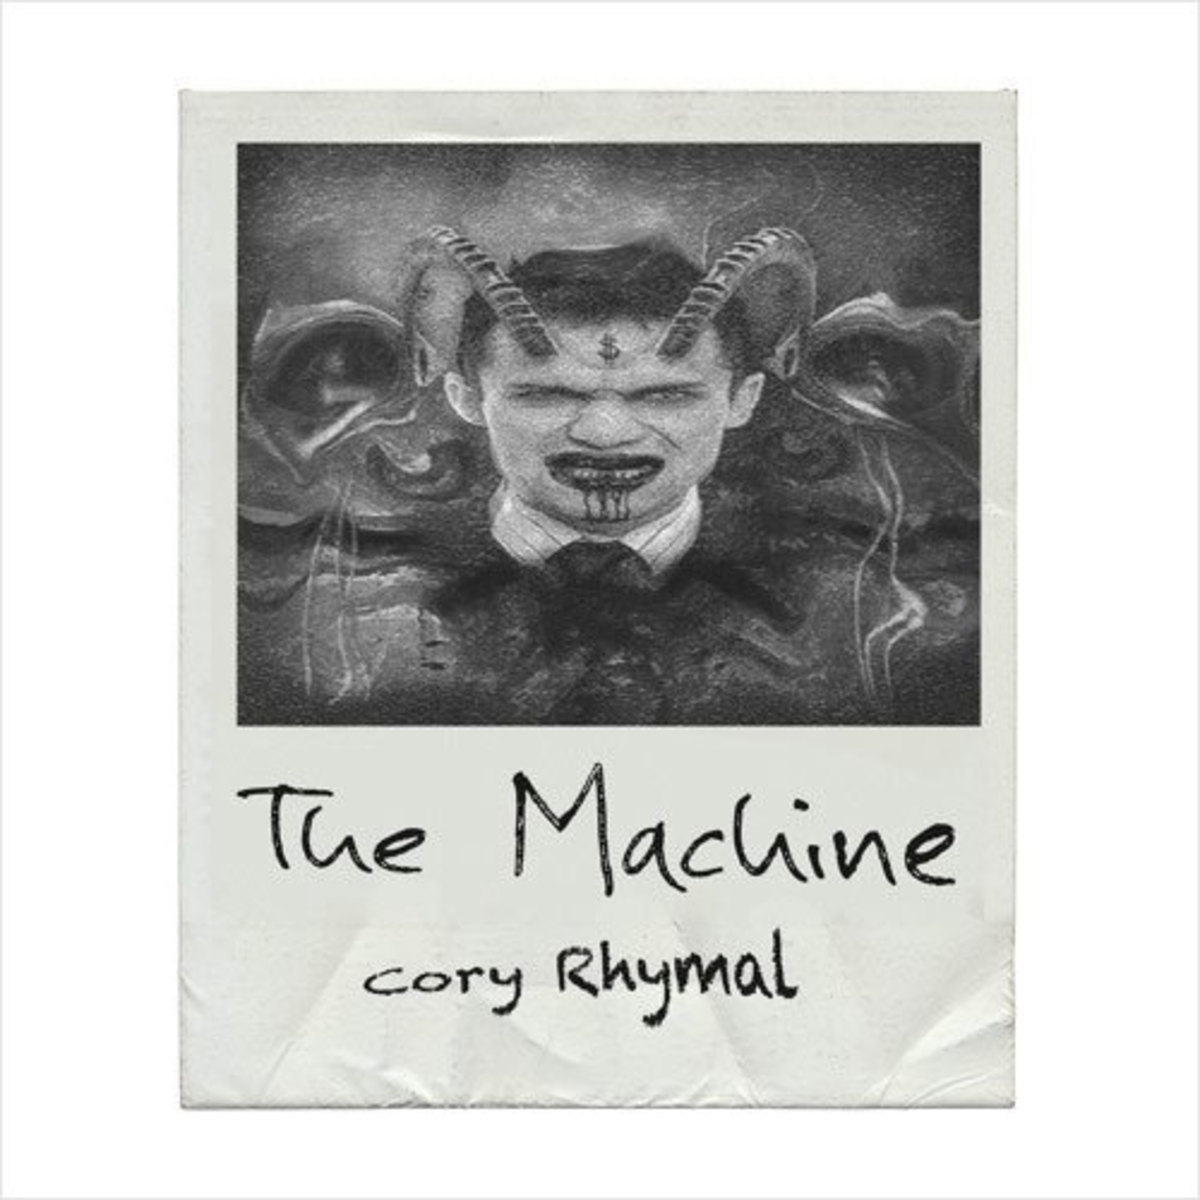 cory-rhymal-the-machine.jpg